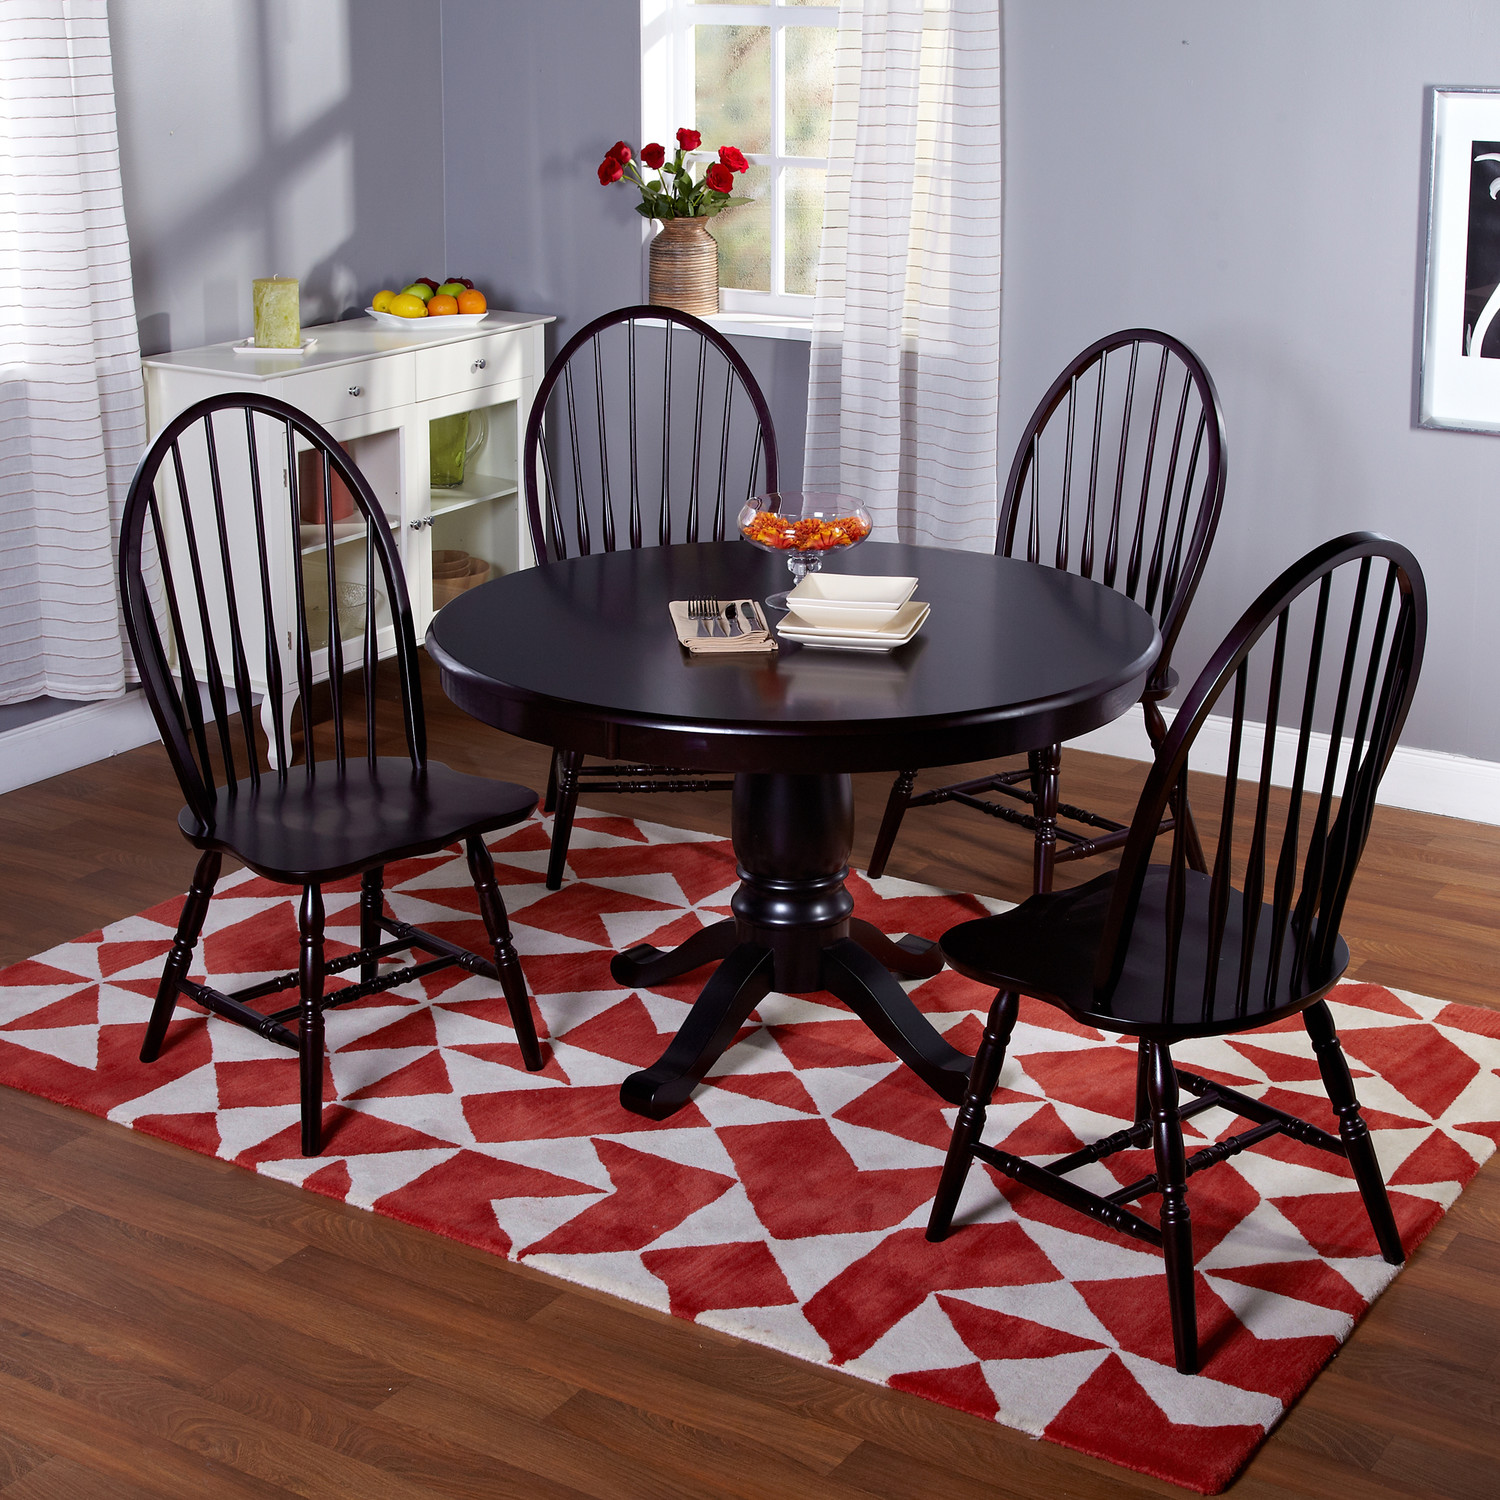 Dining Table With Bench And Chairs Were Comfortable: Most Comfortable Dining Chairs For Your Longer Dining